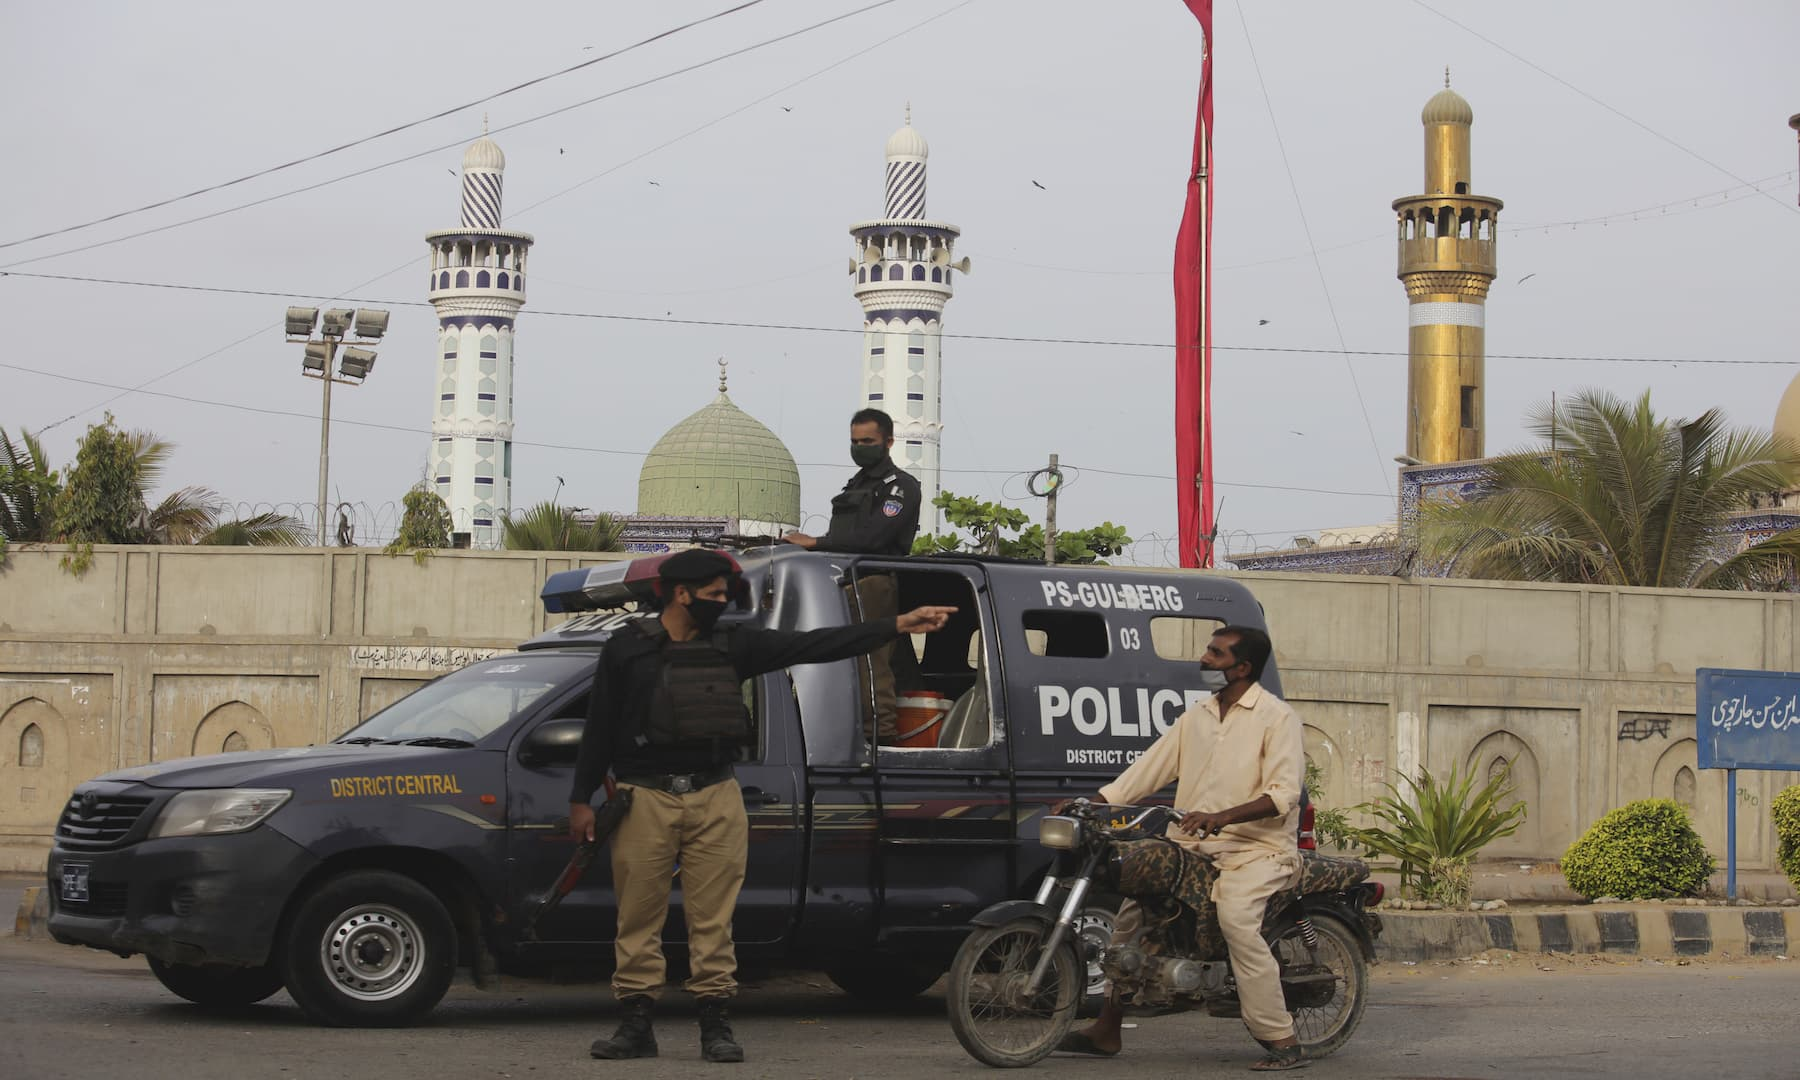 A police officer stops a motorcyclist amid a lockdown in Karachi on Monday. — AP